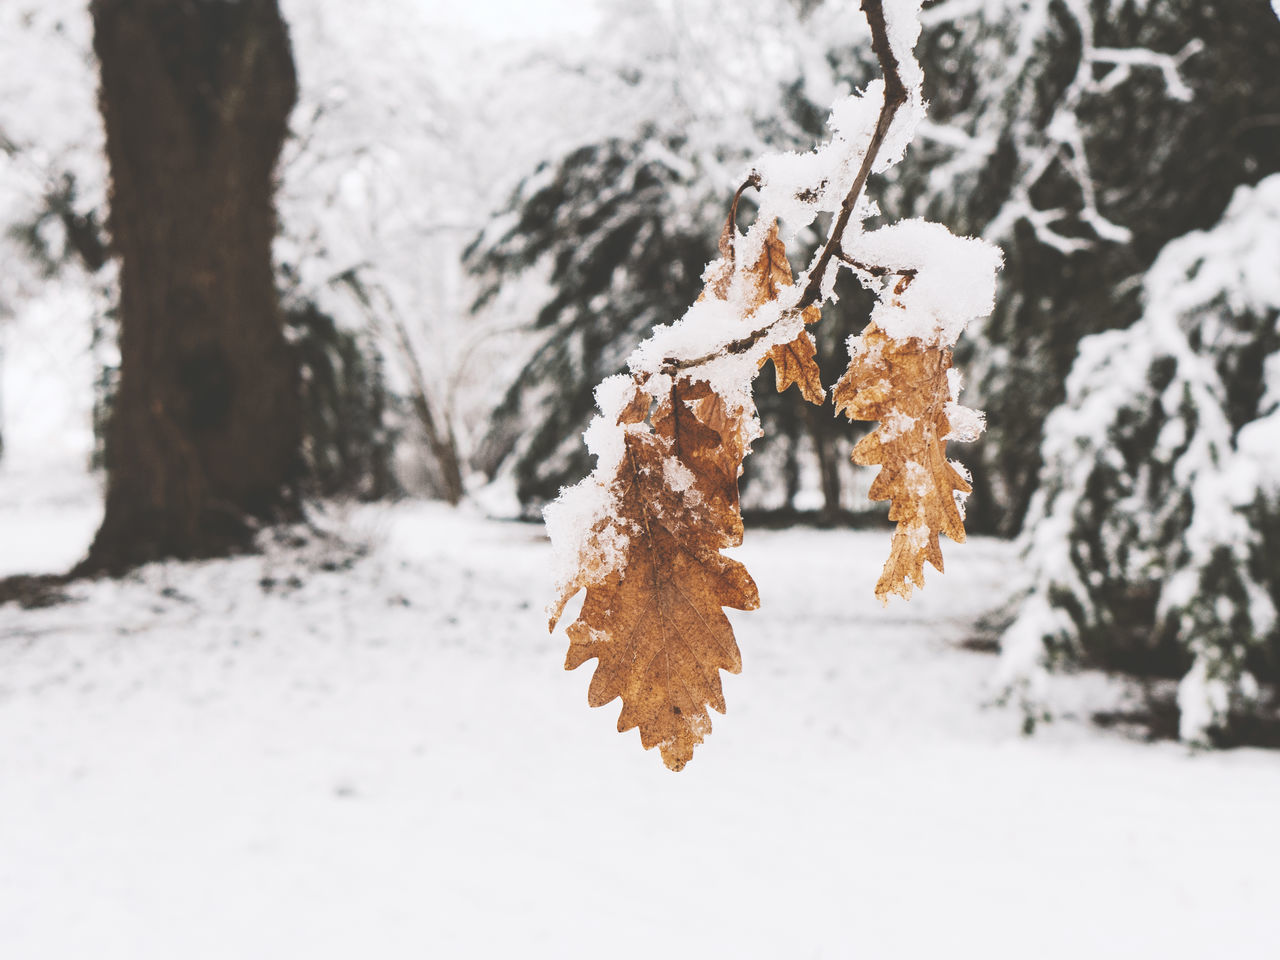 Beauty In Nature Cold Cold Days Cold Temperature Eye4photography  EyeEm Nature Lover Eyeemphoto Focus On Foreground Forest Leaf Nature Outdoors Snow Tree Trees Weather White White Background Winter